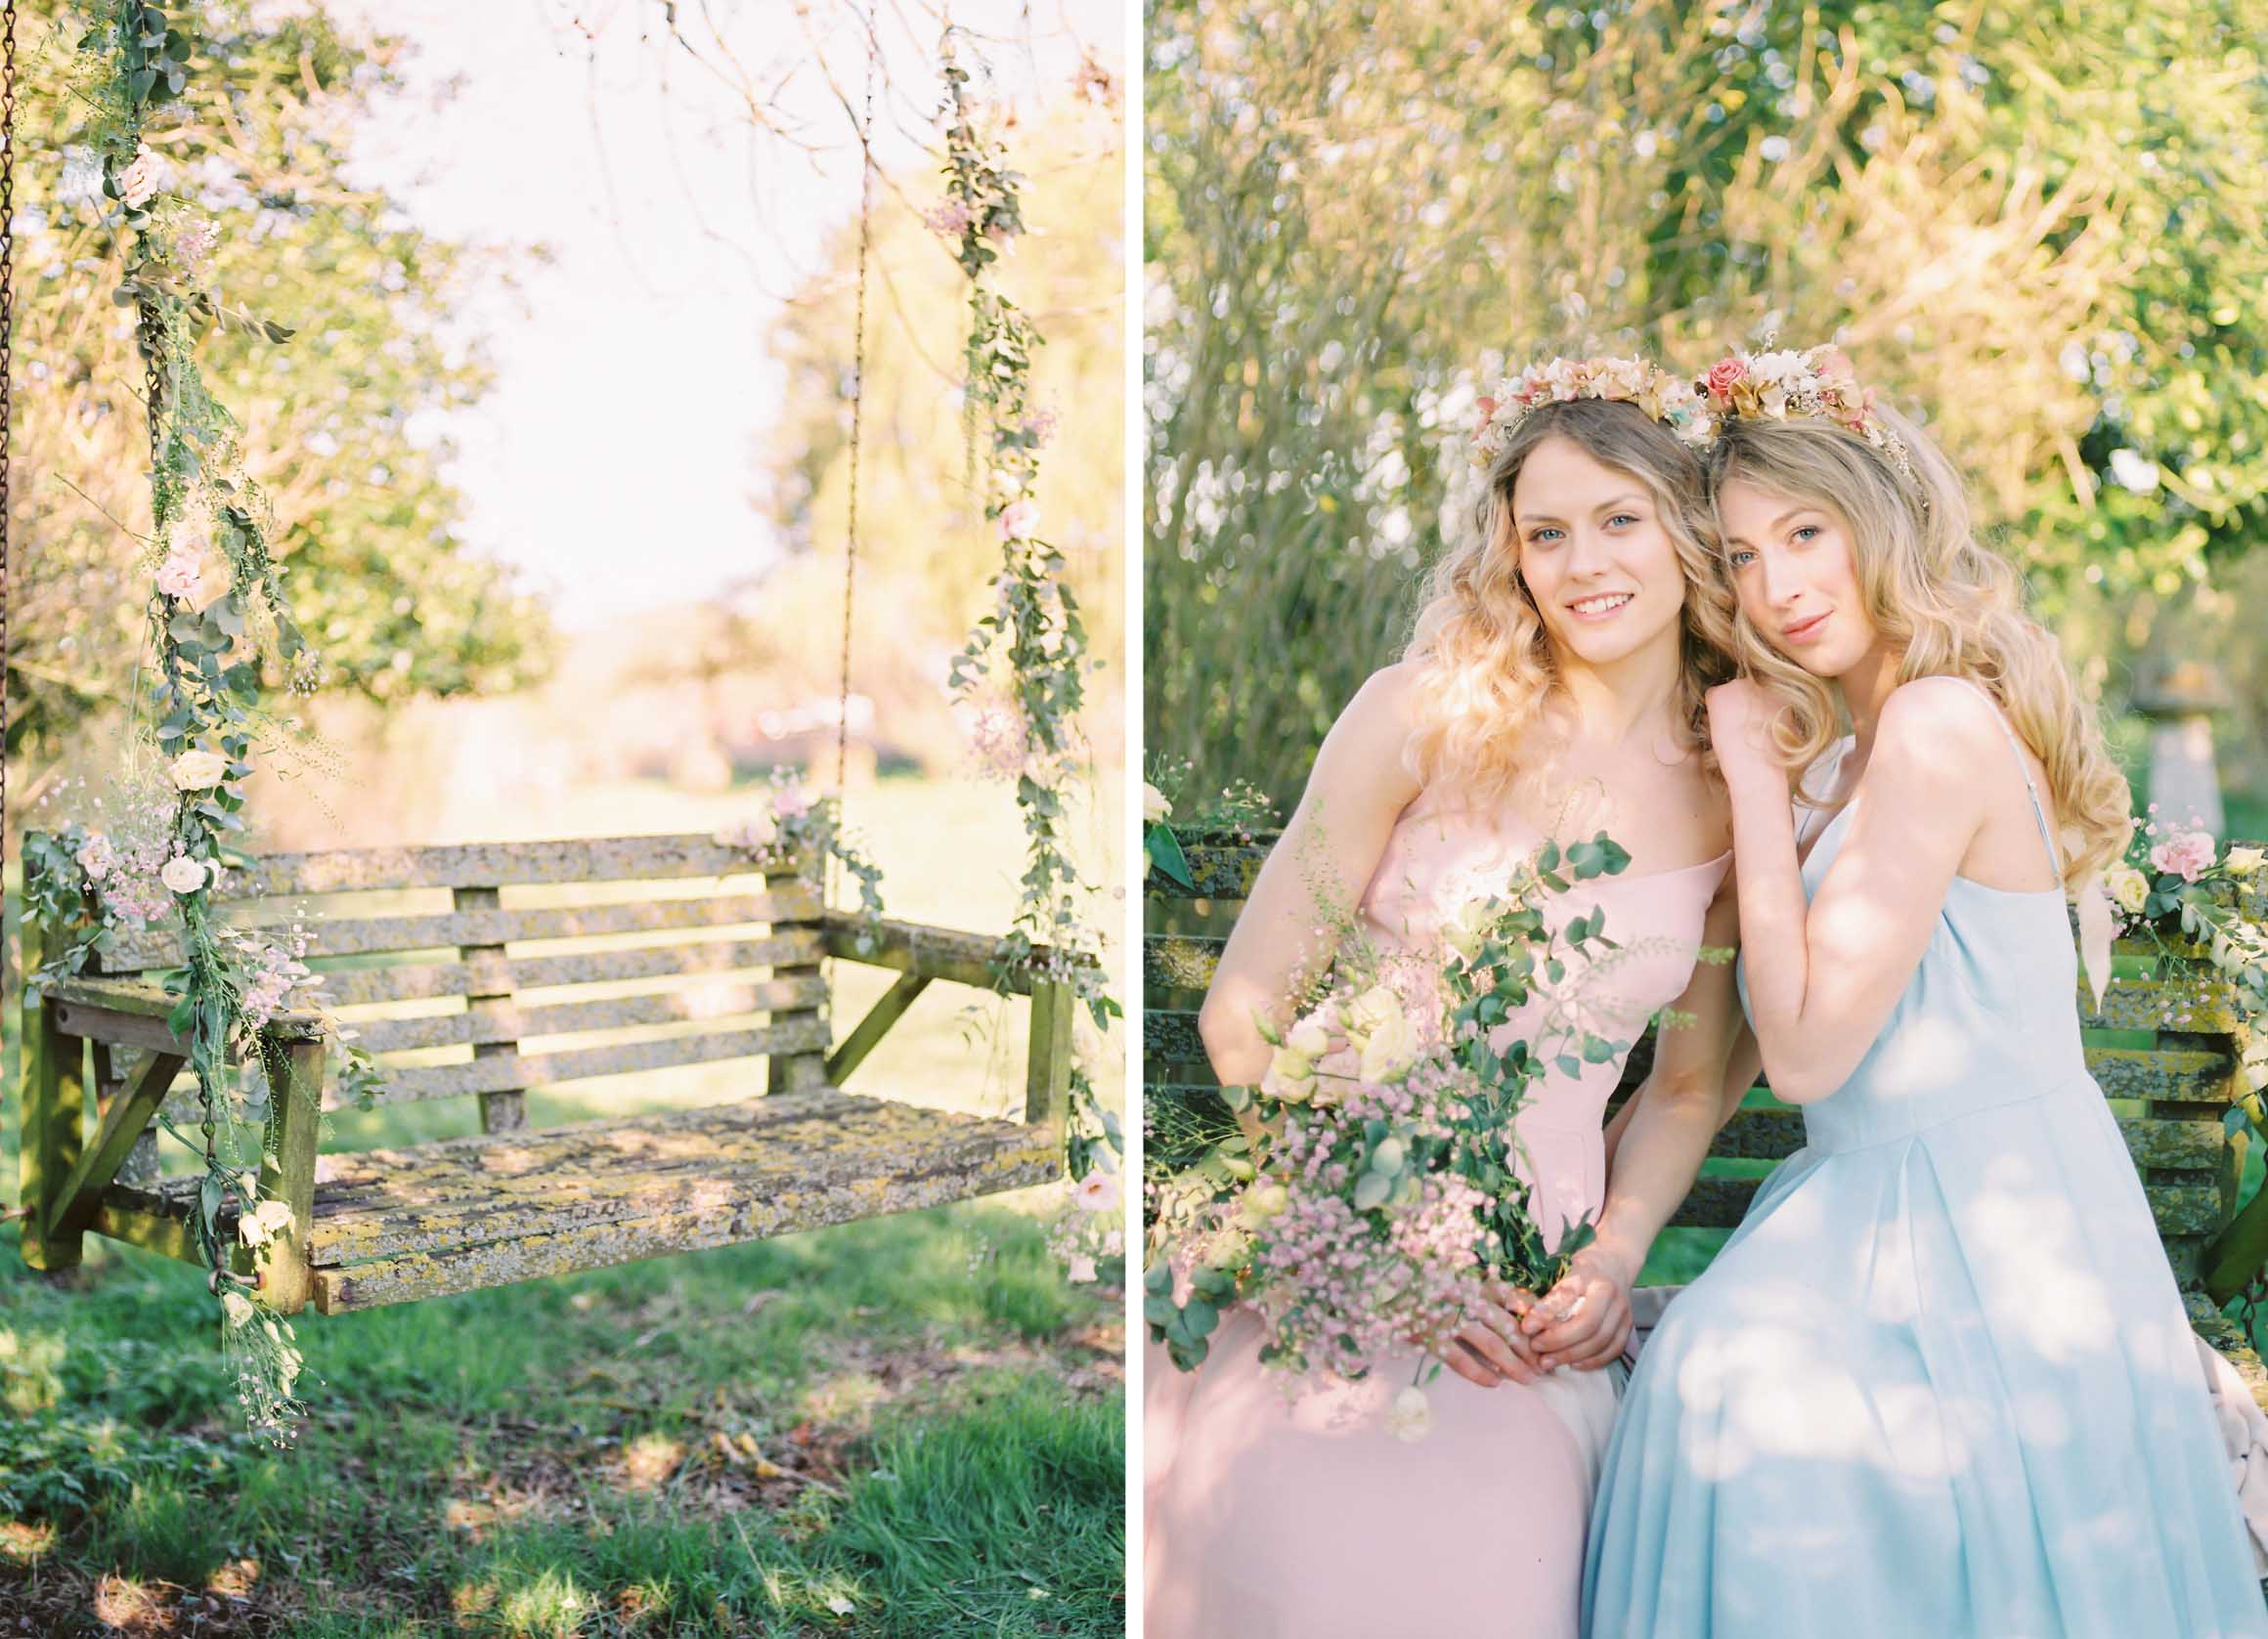 Amy O'Boyle Photography- Destination & UK Fine Art Film Wedding Photographer- TH&TH Bridesmaid Dress Shoot.jpg